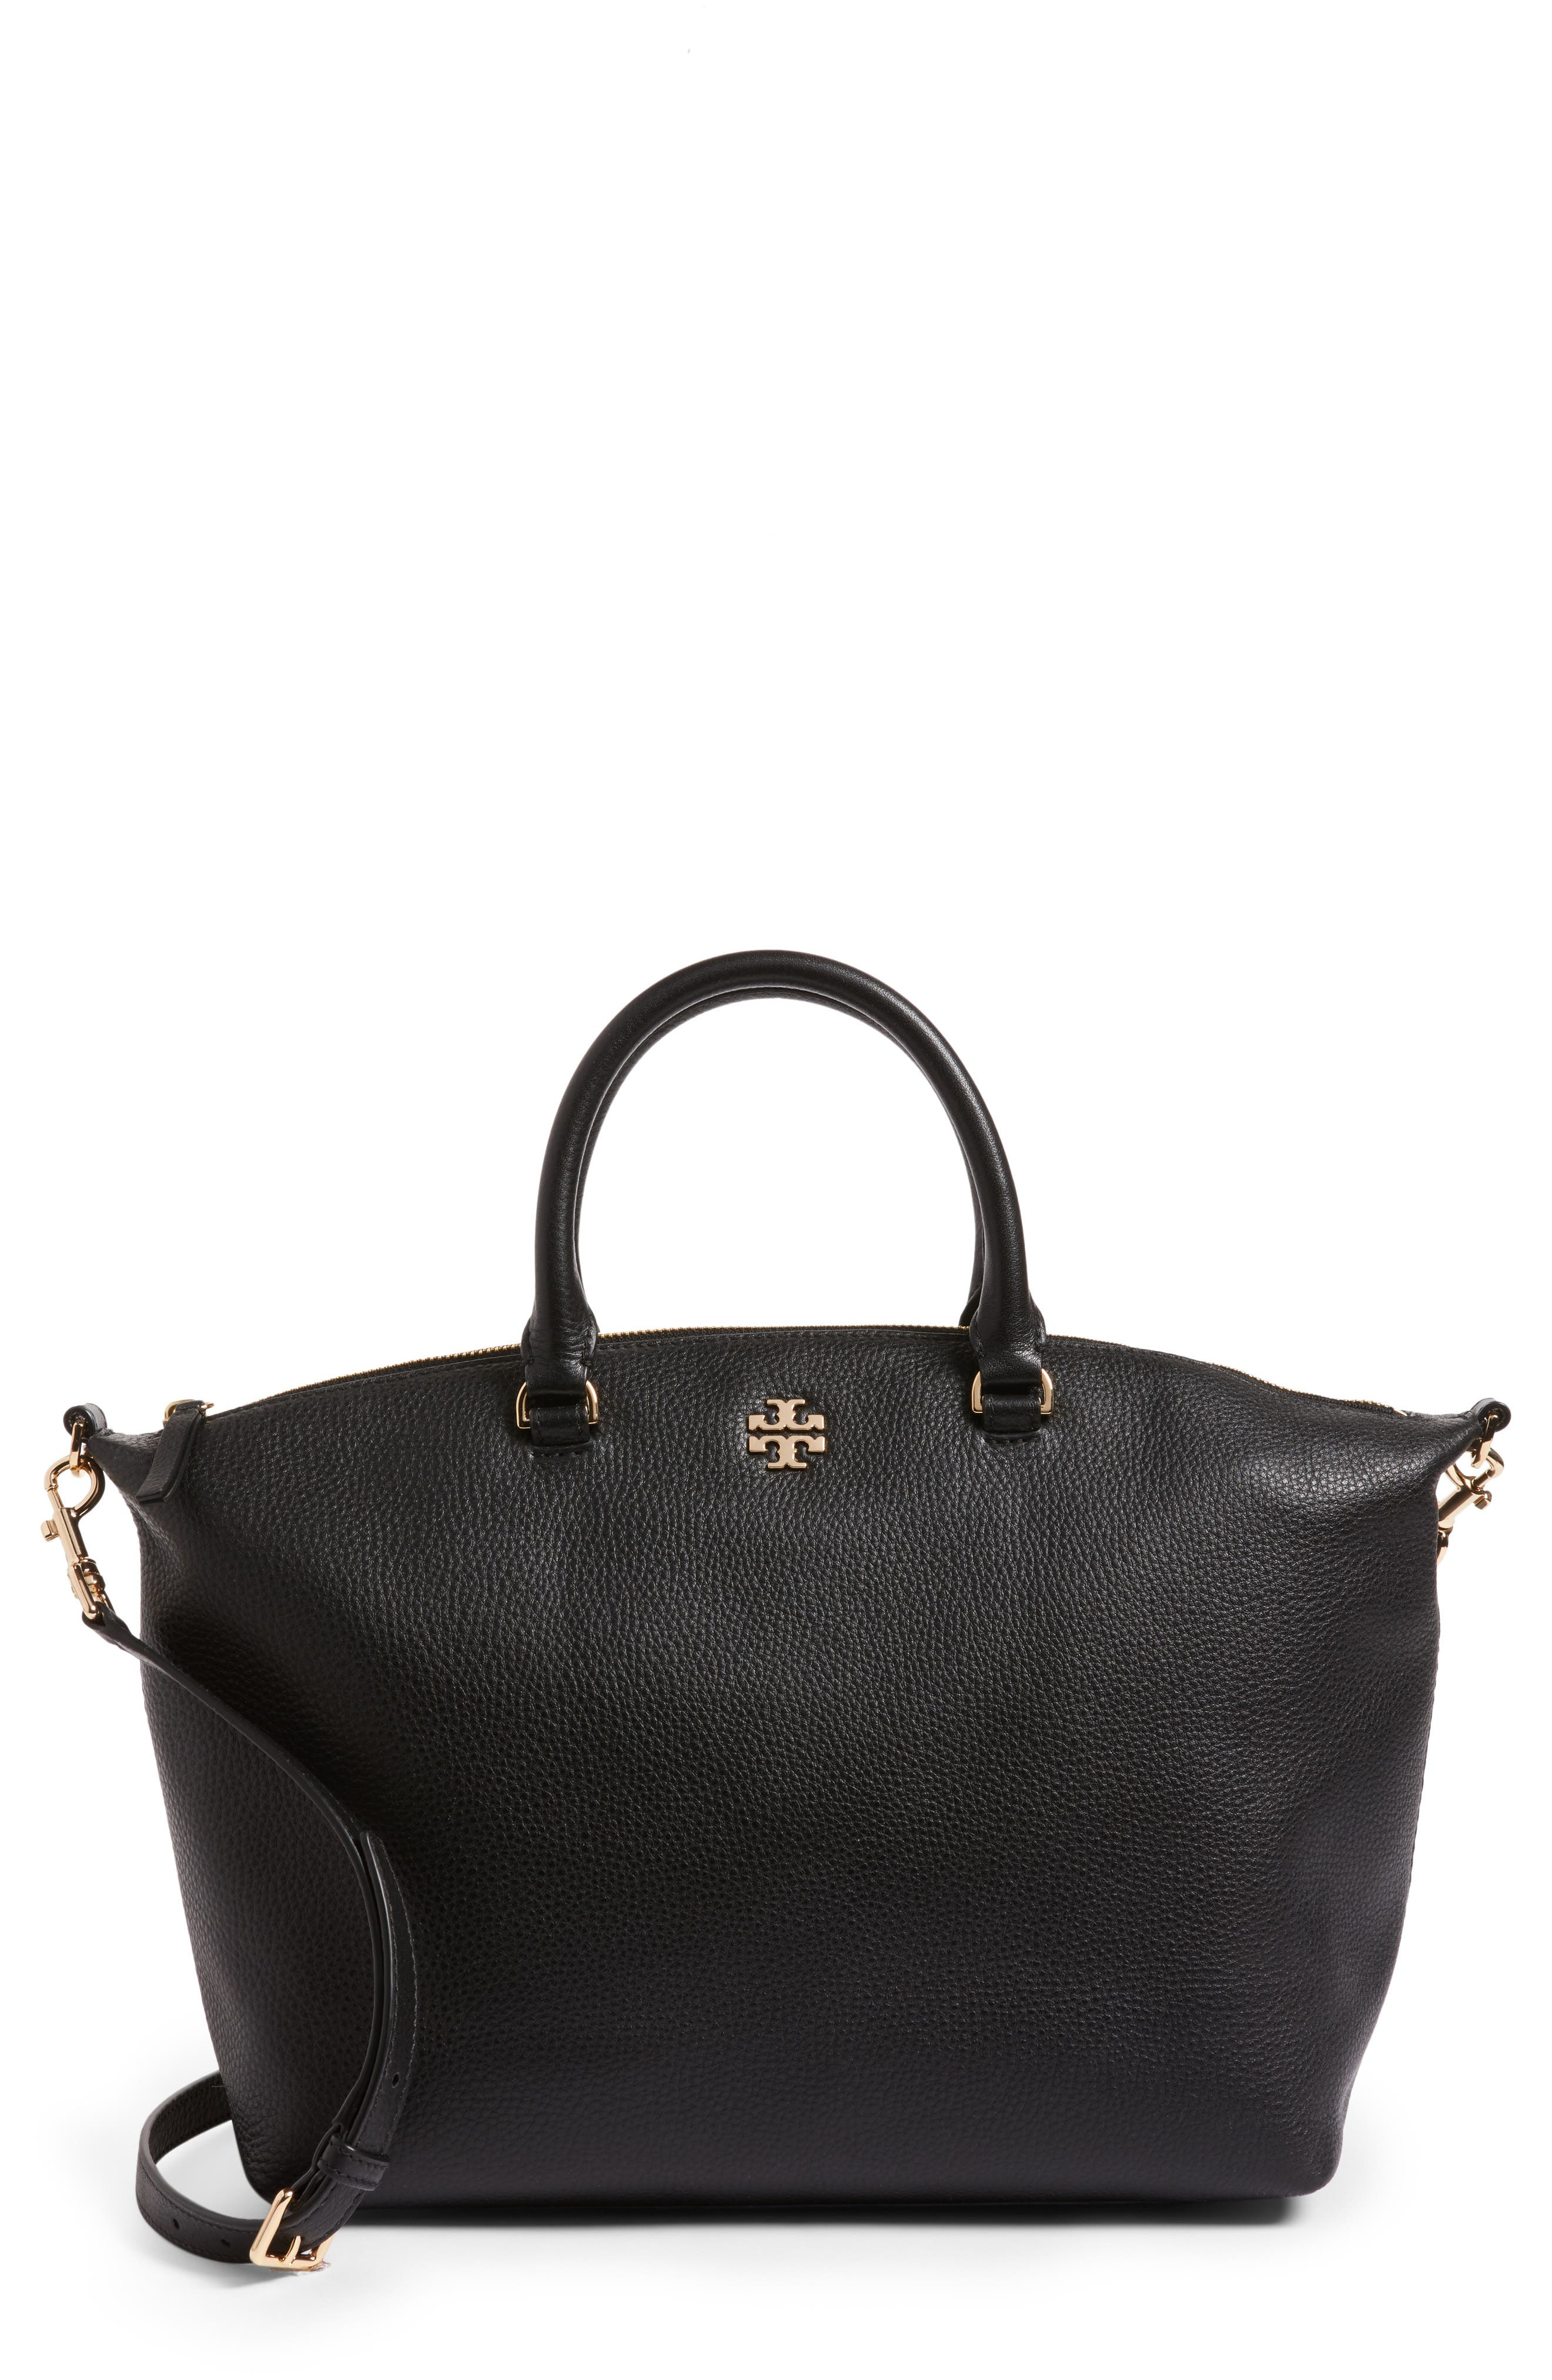 Handbags & Purses | Nordstrom